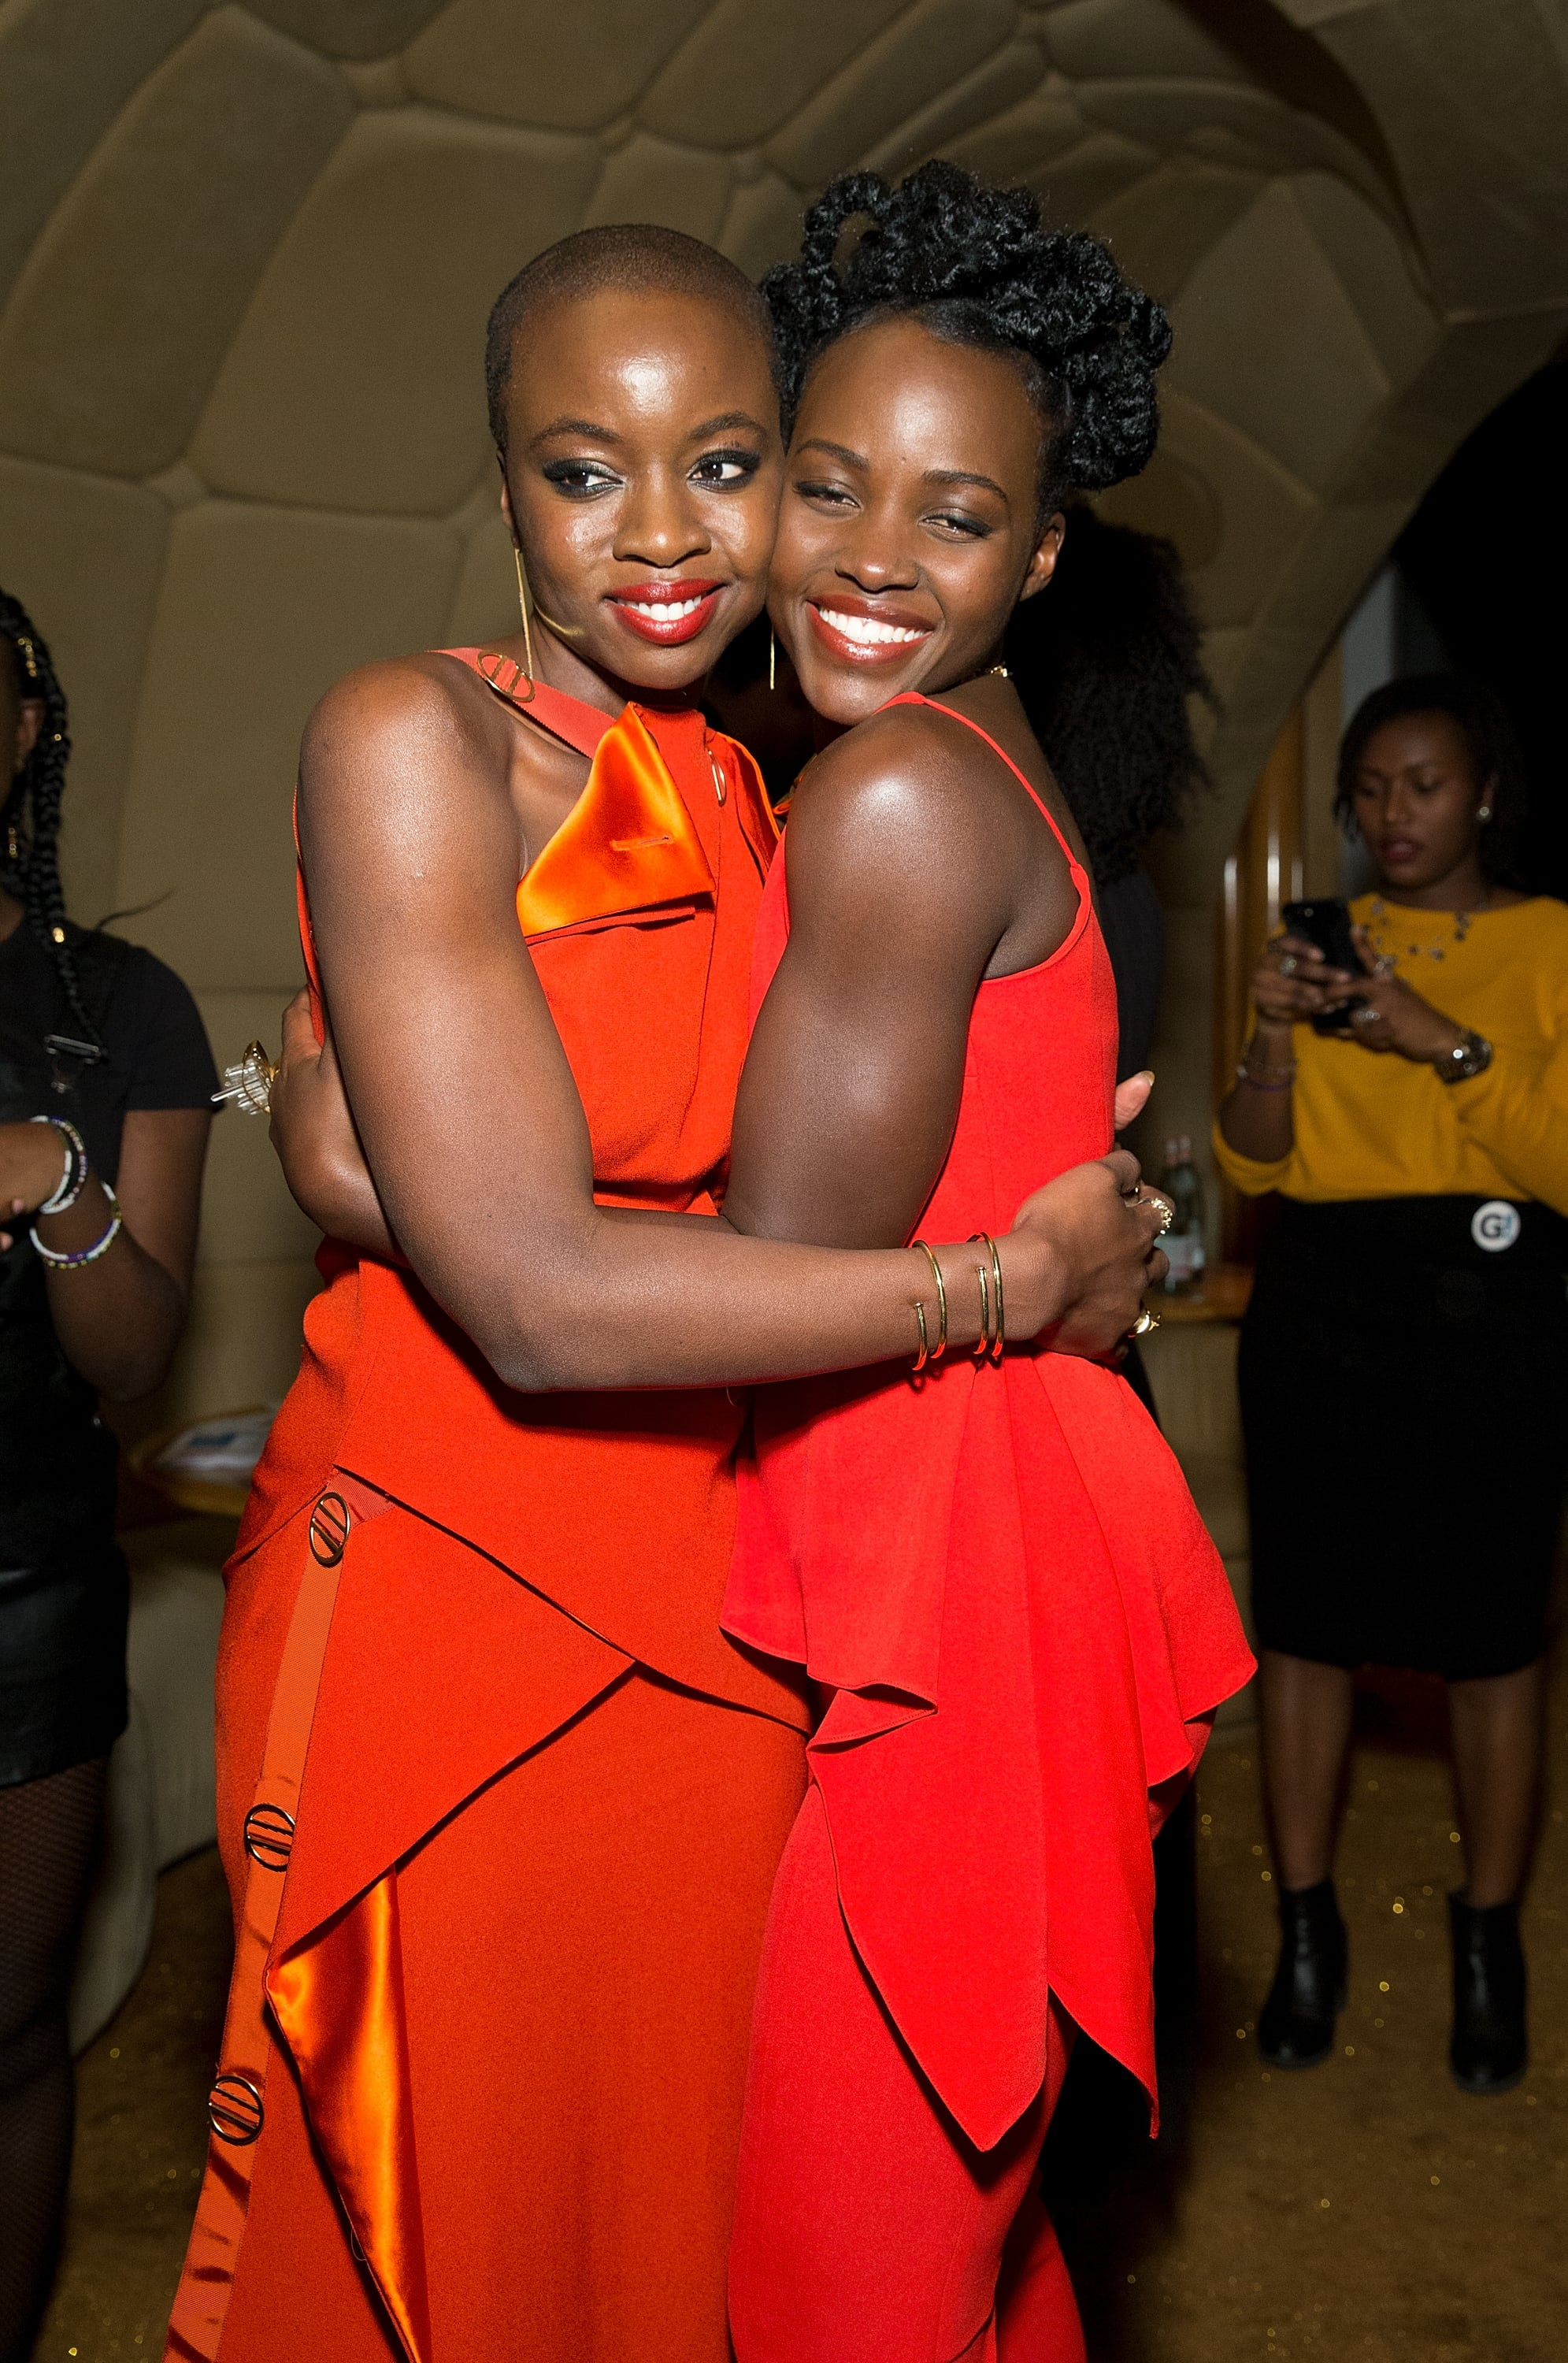 NEW YORK, NY - FEBRUARY 12:  Actors Danai Gurira and Lupita Nyong'o pose for a picture during the DANAI x One x Love Our Girls celebration at The Top of The Standard on February 12, 2018 in New York City.  (Photo by Bennett Raglin/Getty Images)